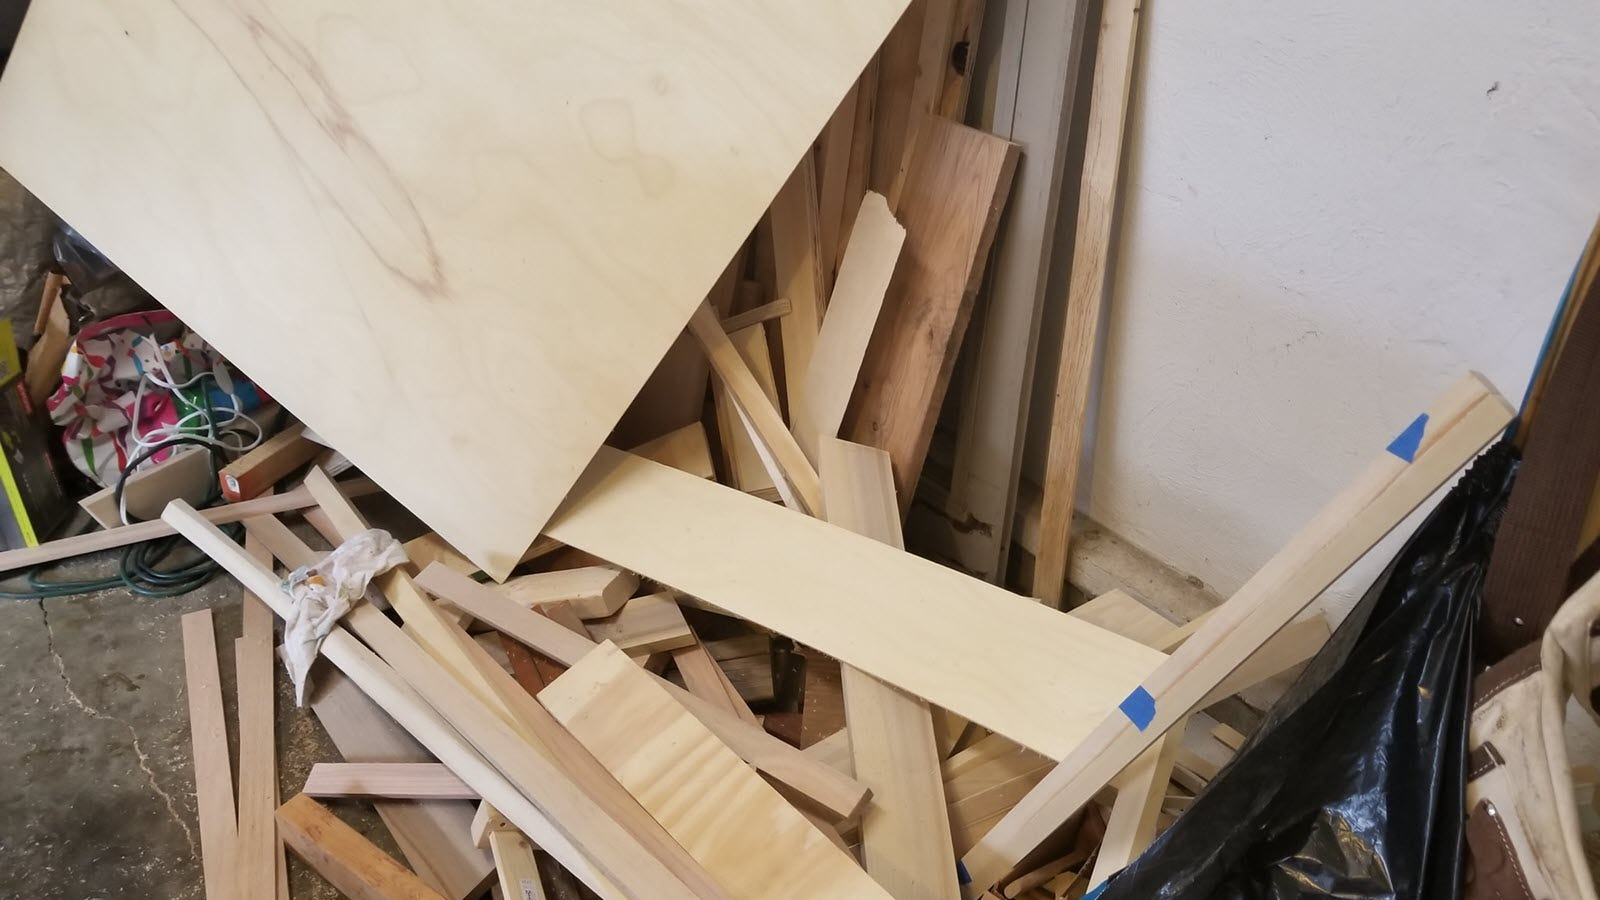 A giant disorganized pile of wood in a nightmarish stack.